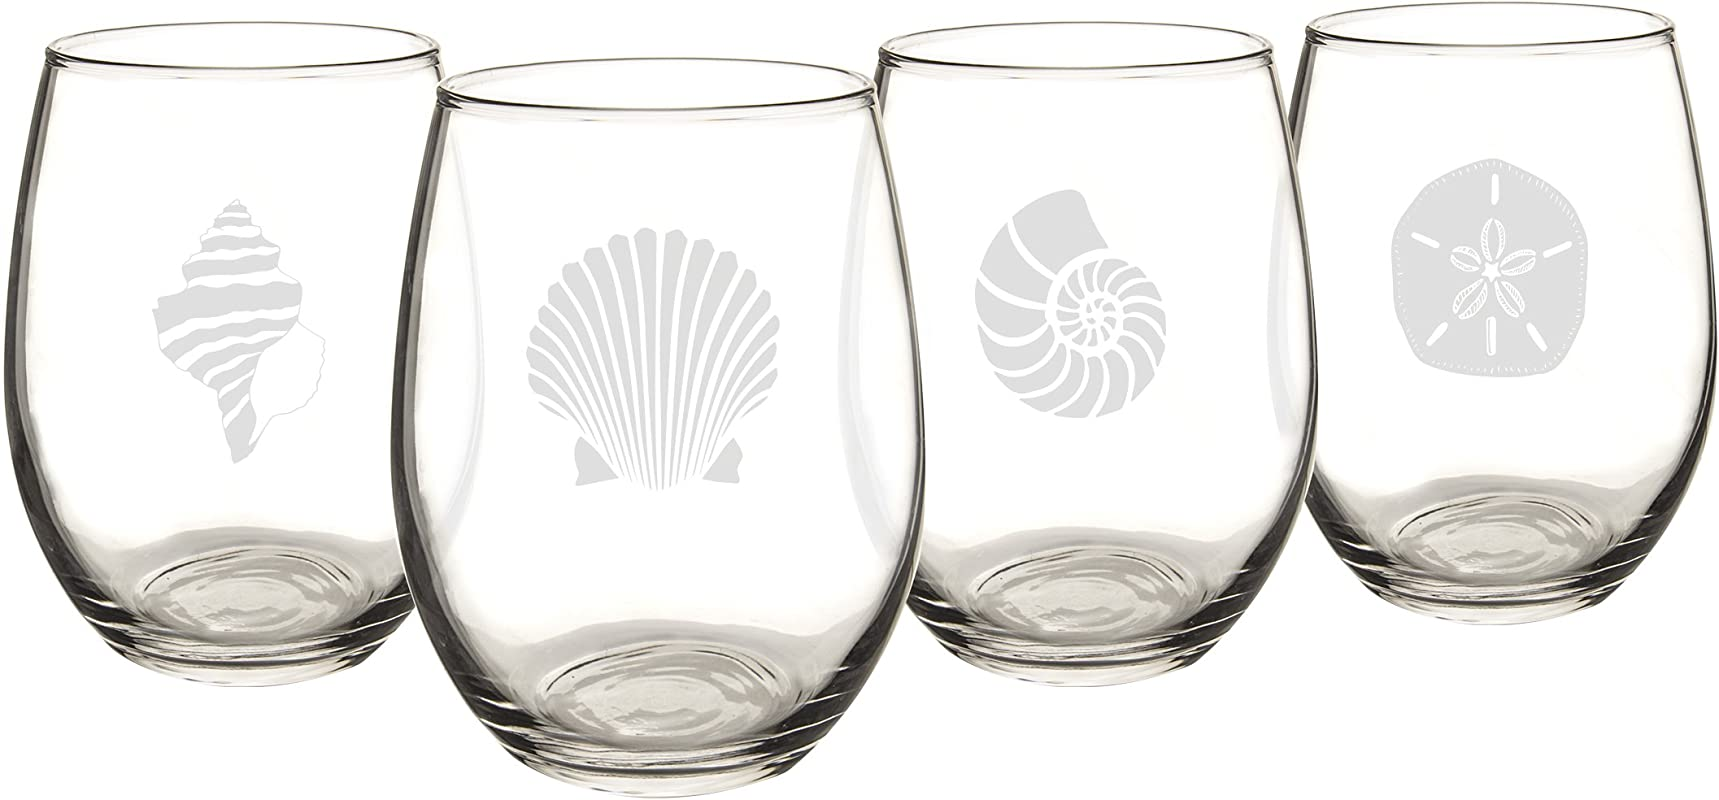 Cathy S Concepts SEA 1110 Seashell Stemless Wine Glasses 4 Unique Designs Holds Up To 21 Oz 4 Glass Set